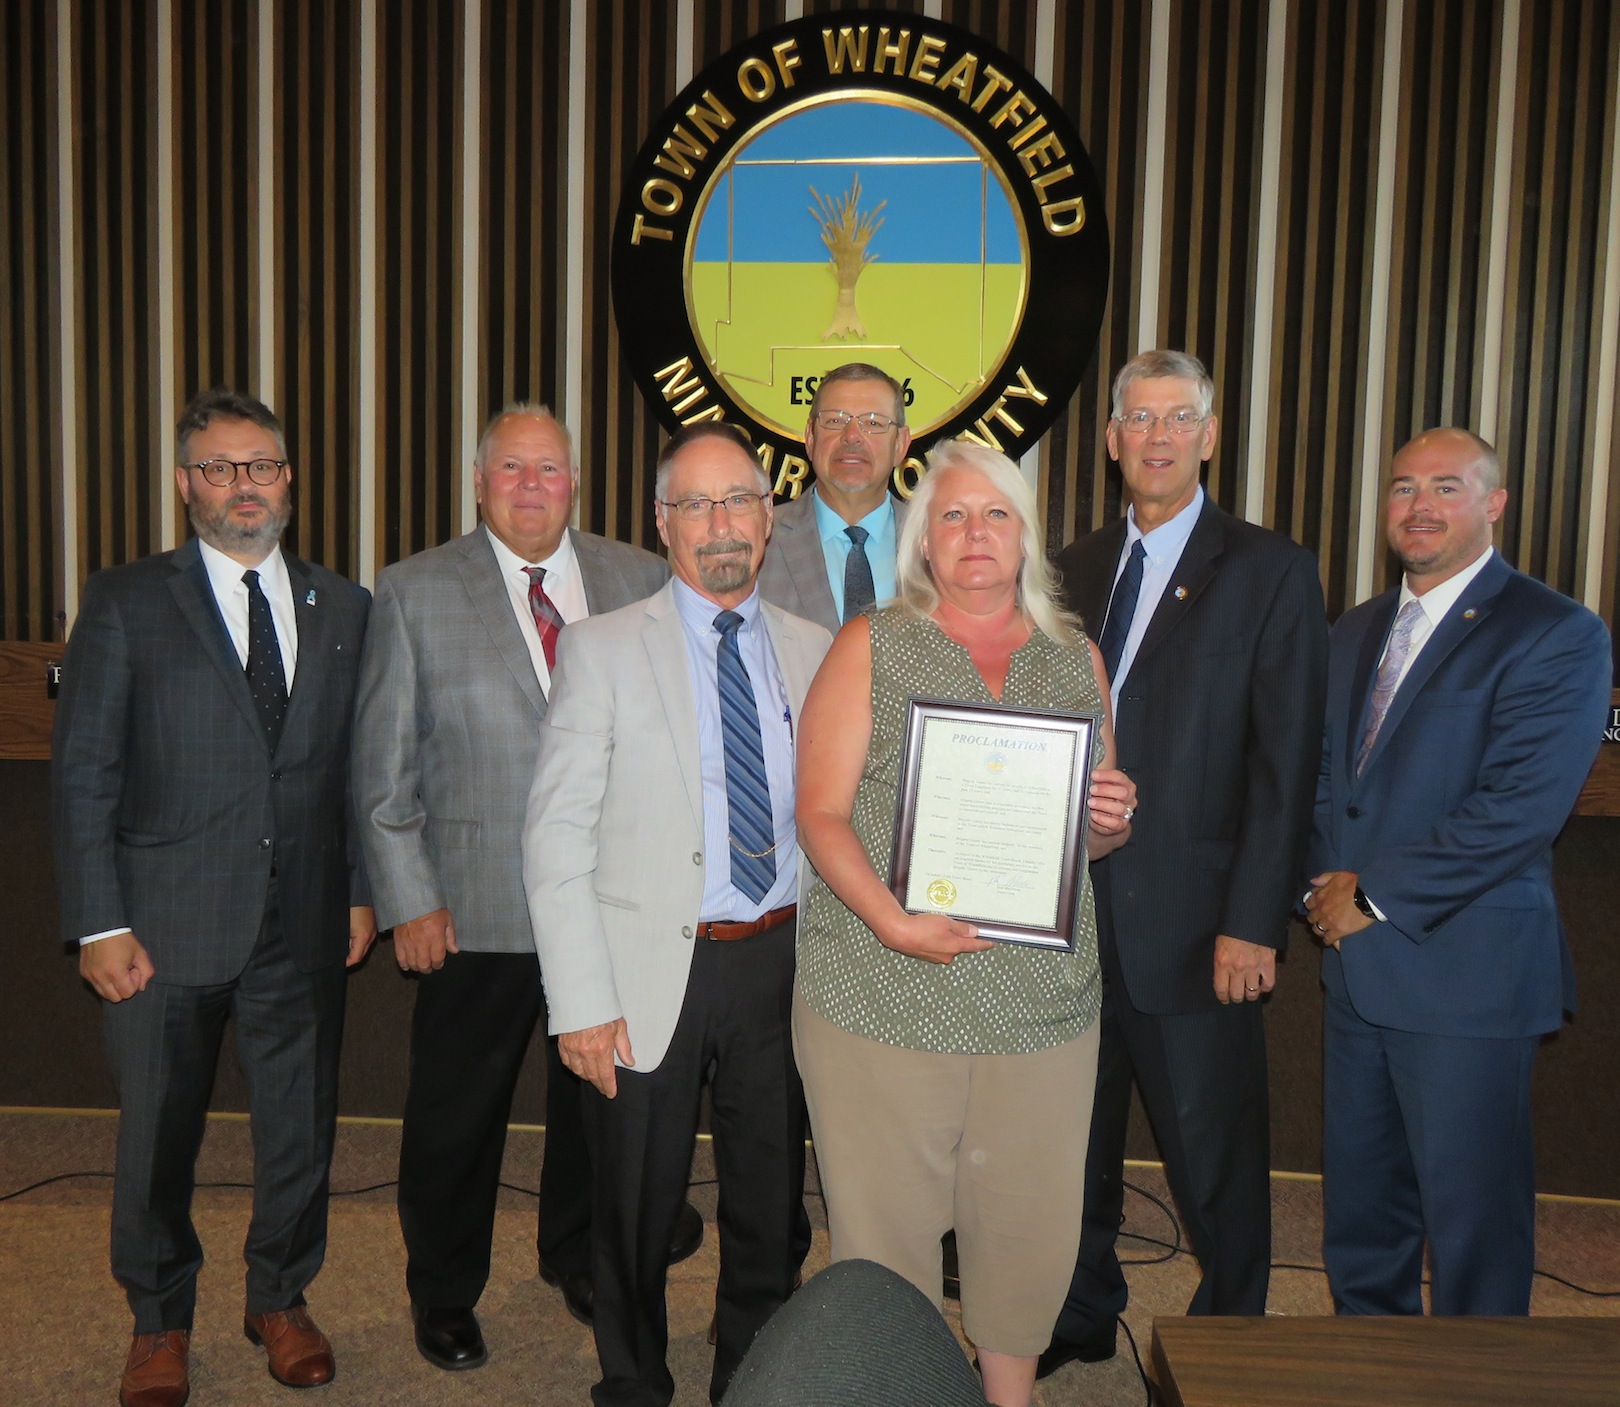 Pictured, at left, with the proclamation, from left, Town Attorney Matthew Brooks, Councilman Gil Doucet, MacSwan, Councilman Randy Retzlaff, Grawe, and councilmen Larry Helwig and Curt Doktor.